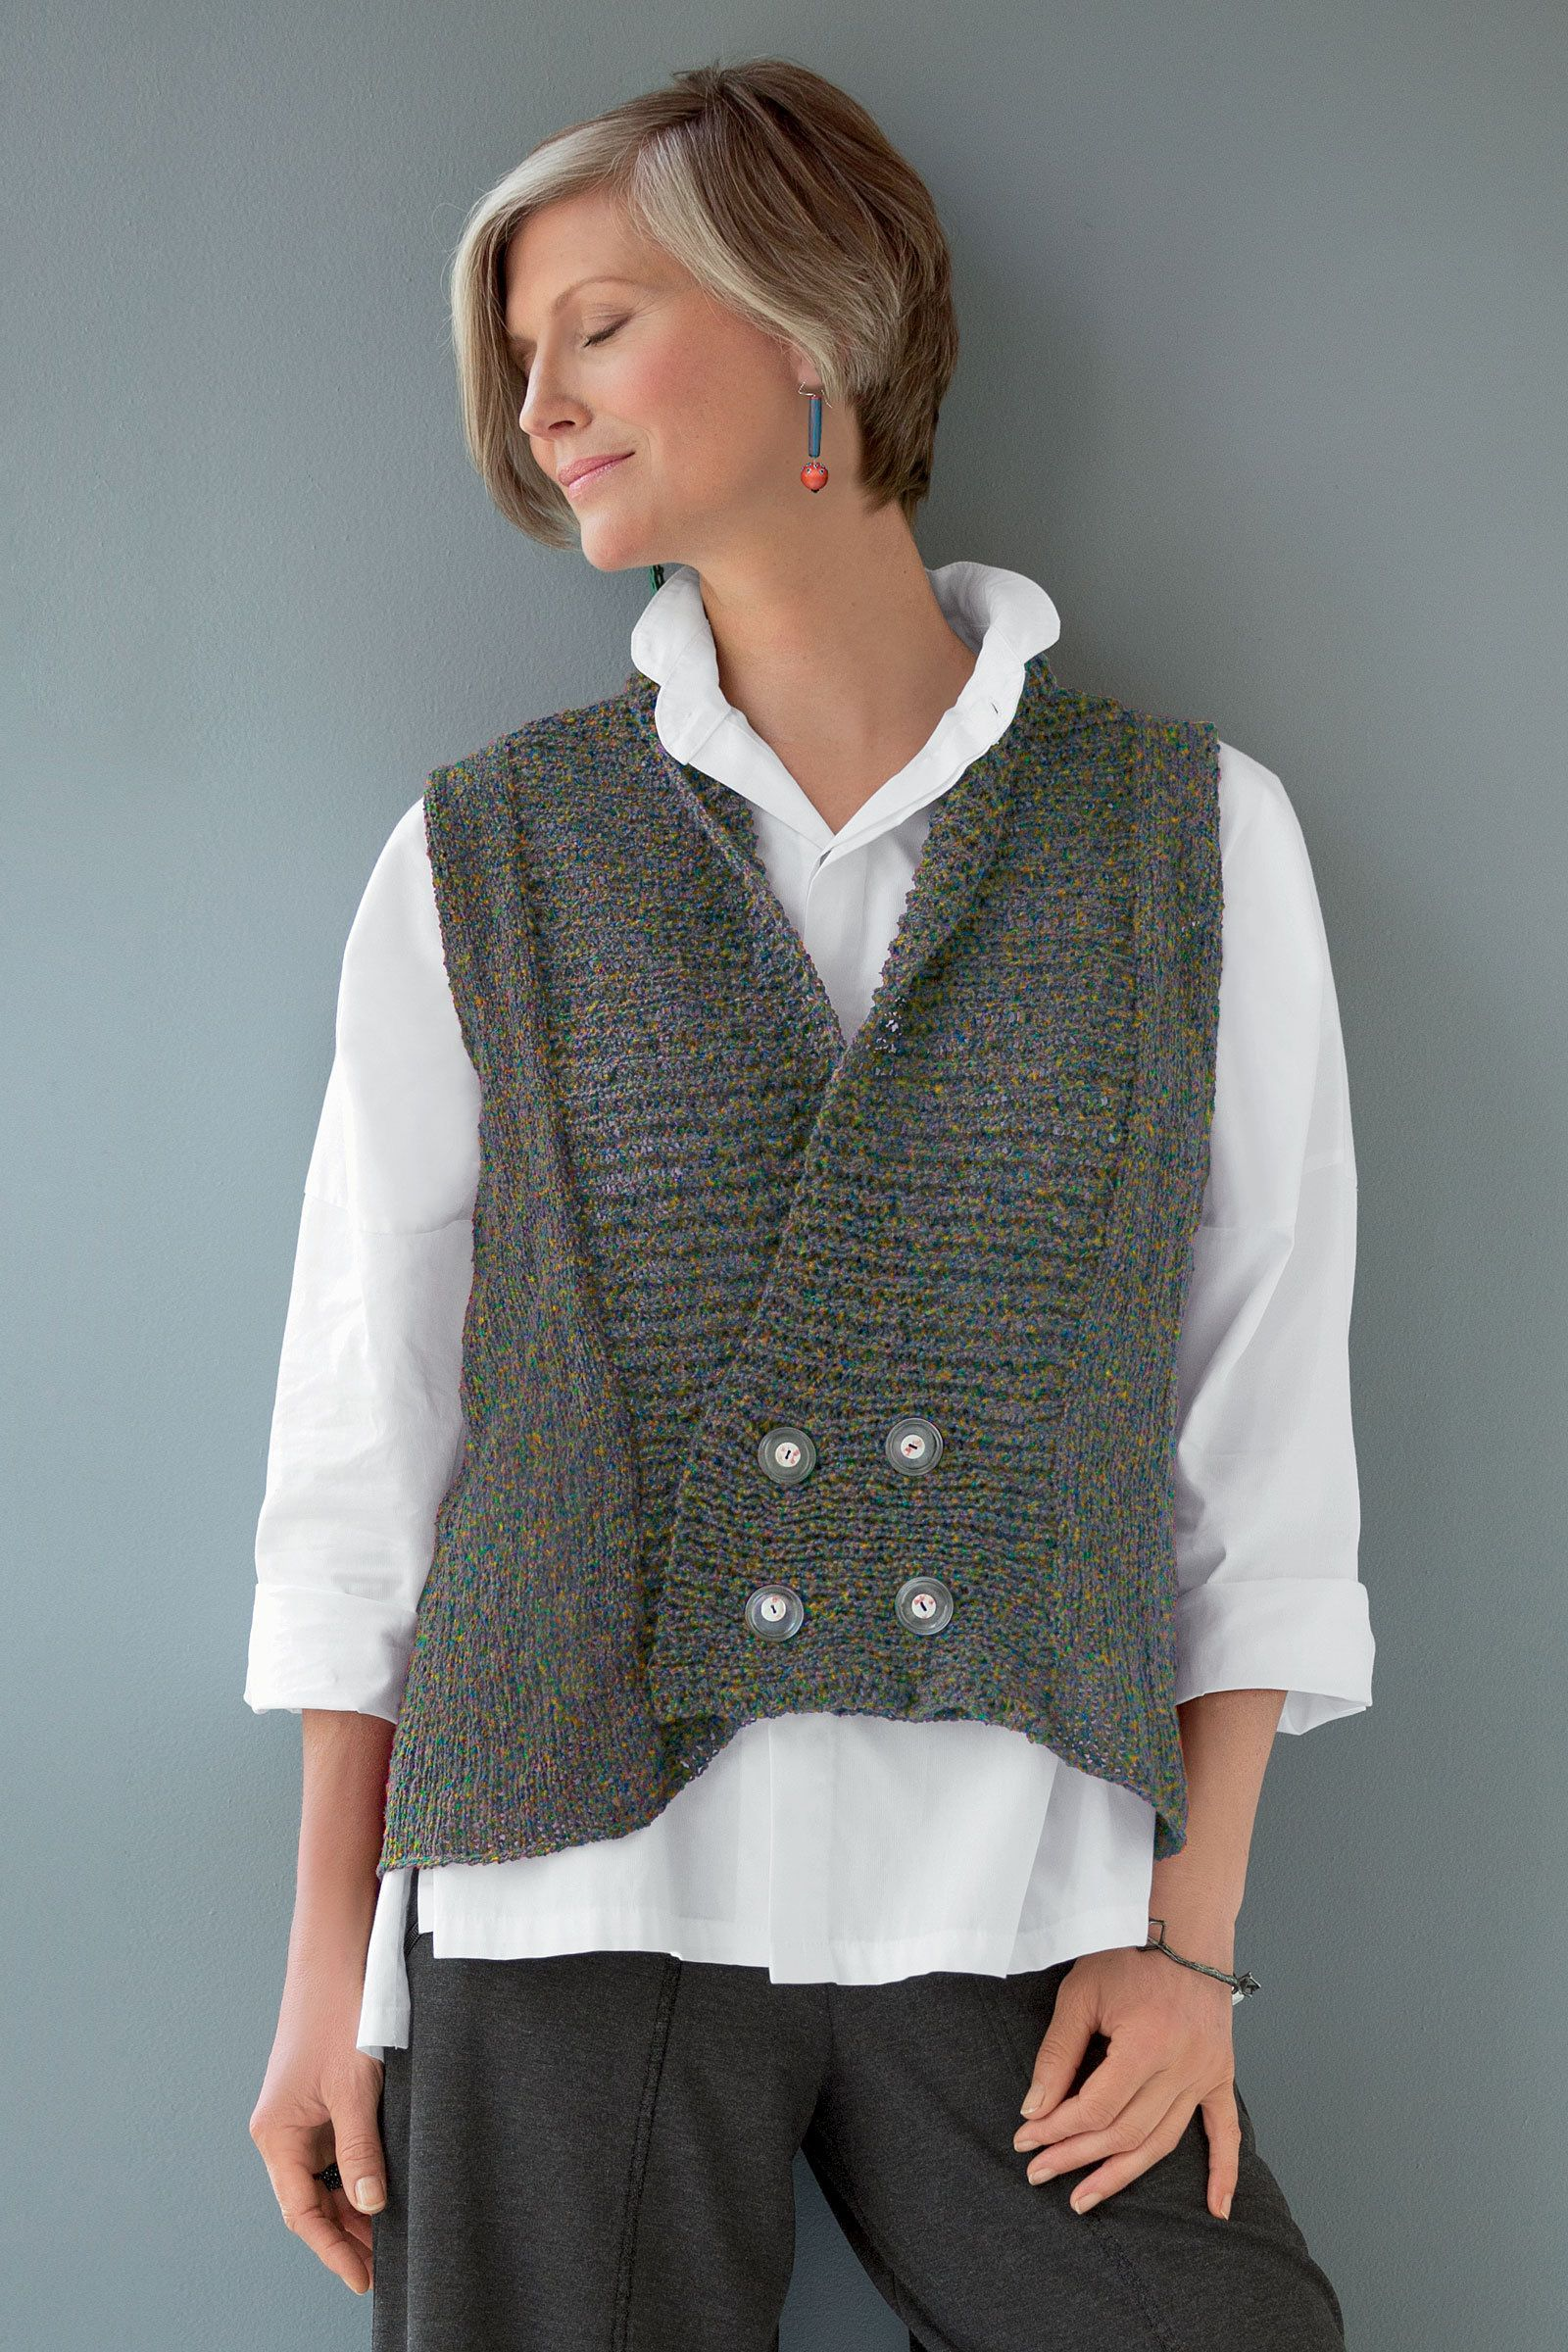 Crossover Vest by Amy Brill Sweaters (Sweater | Crossover ...